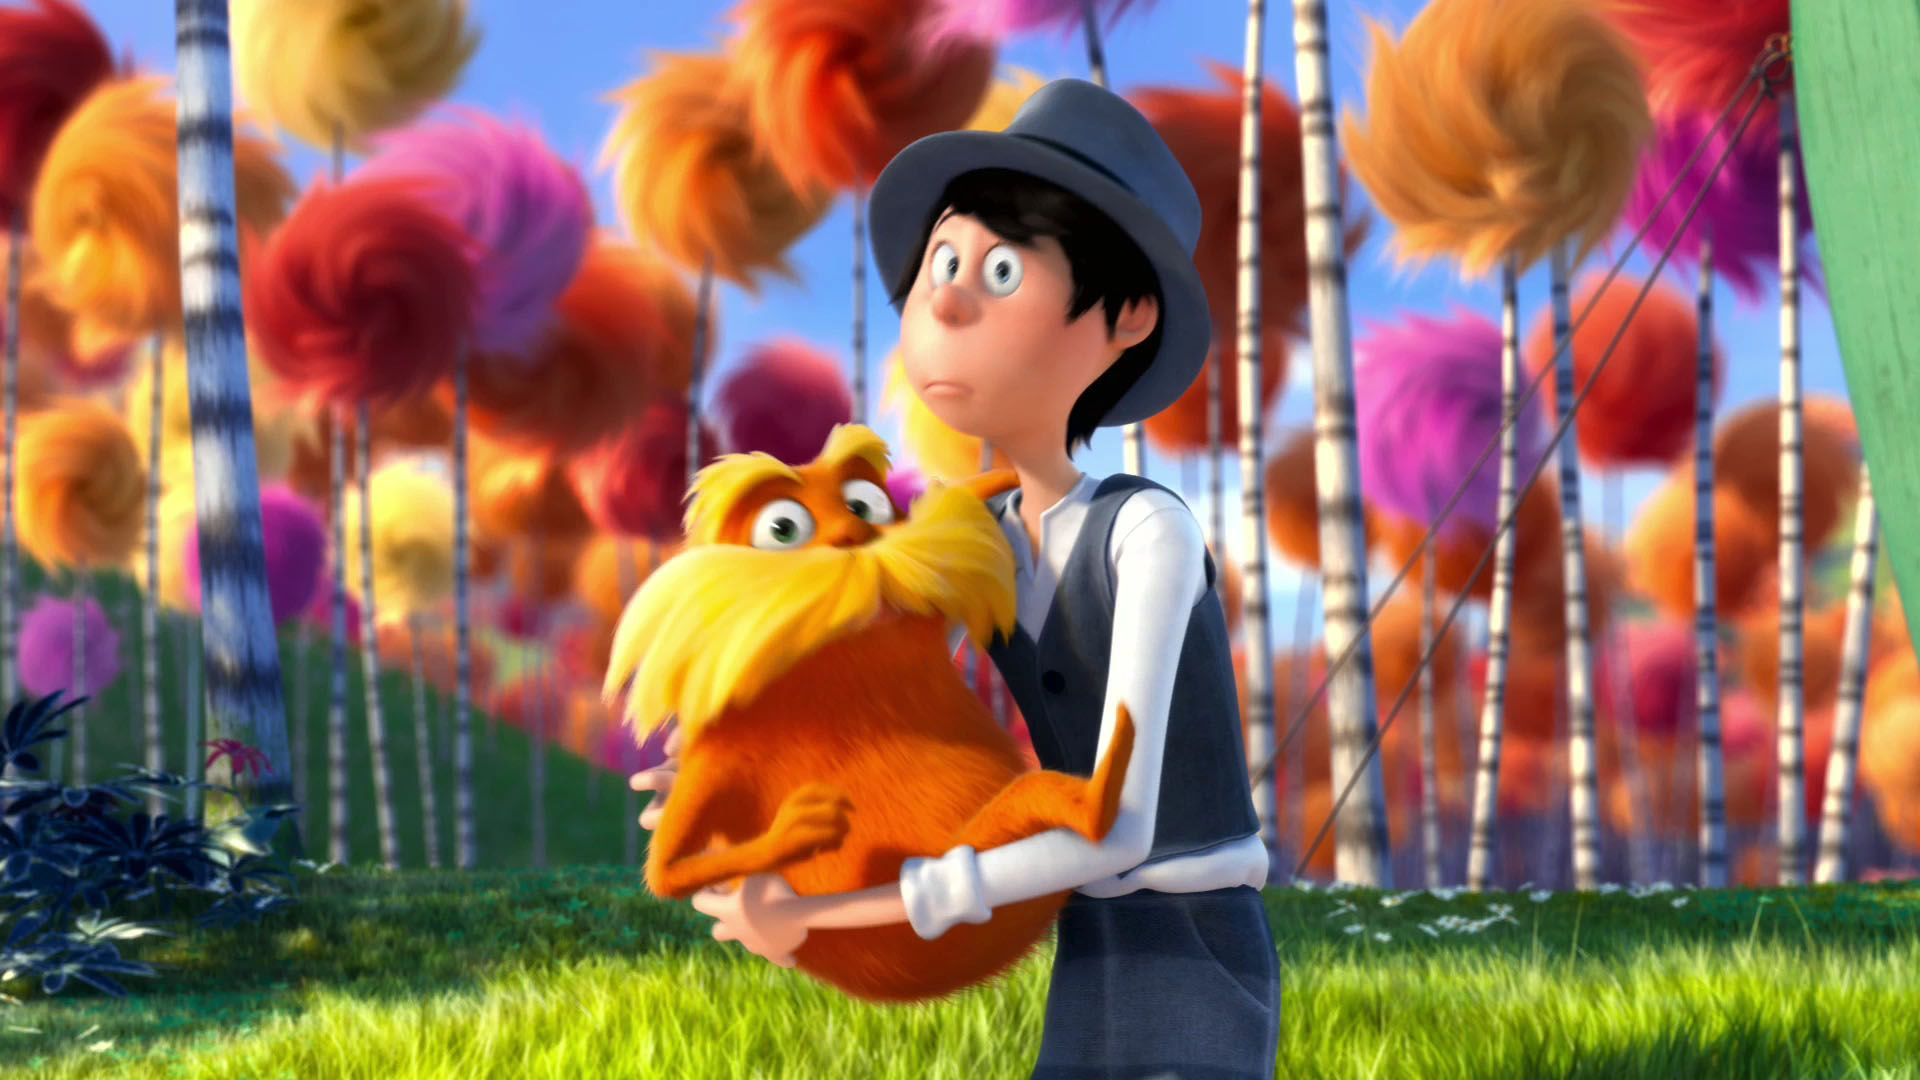 The lorax | Cartoon | Pinterest